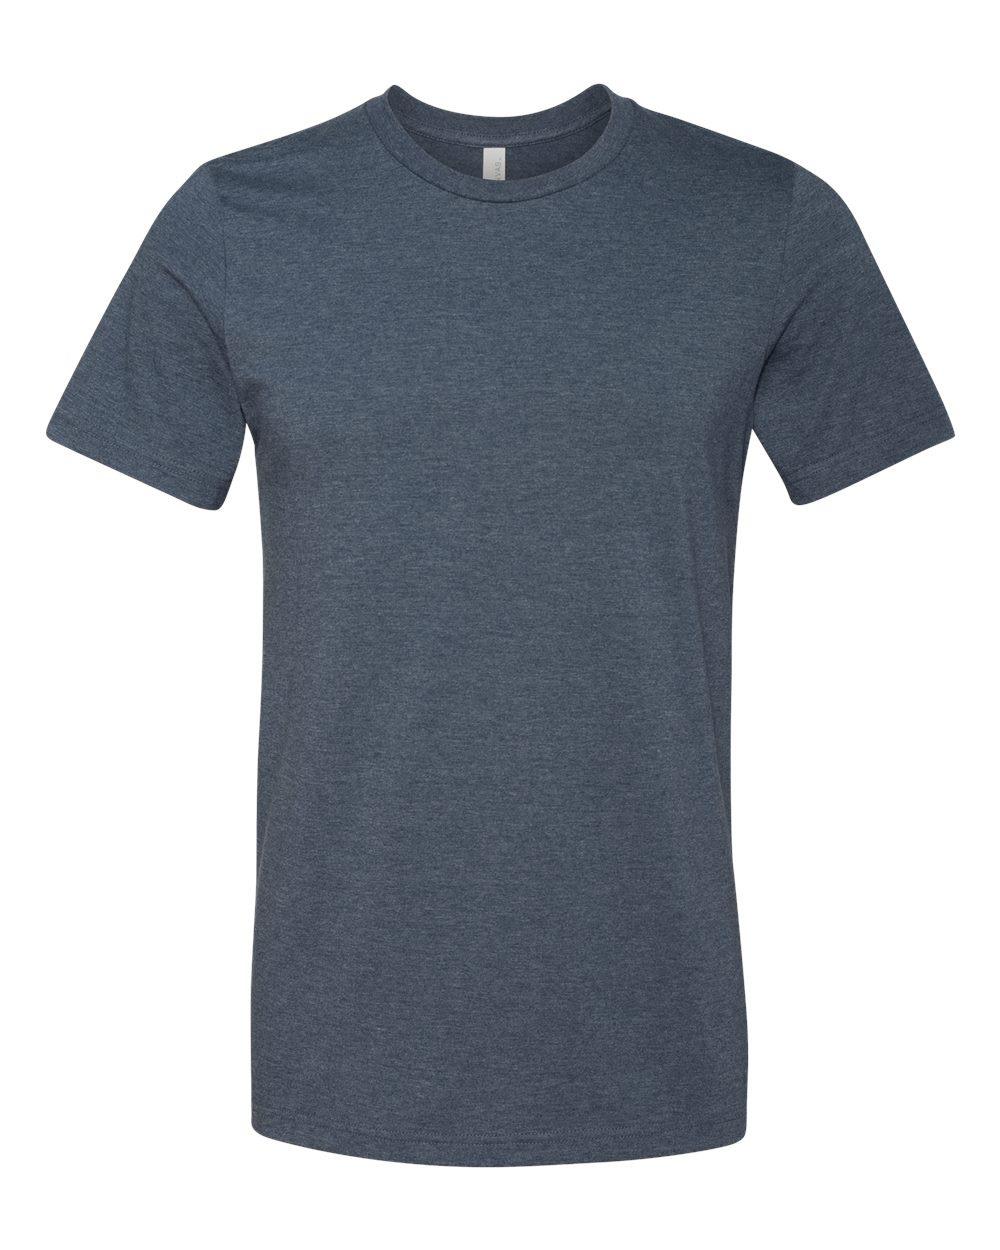 click to view Heather Navy